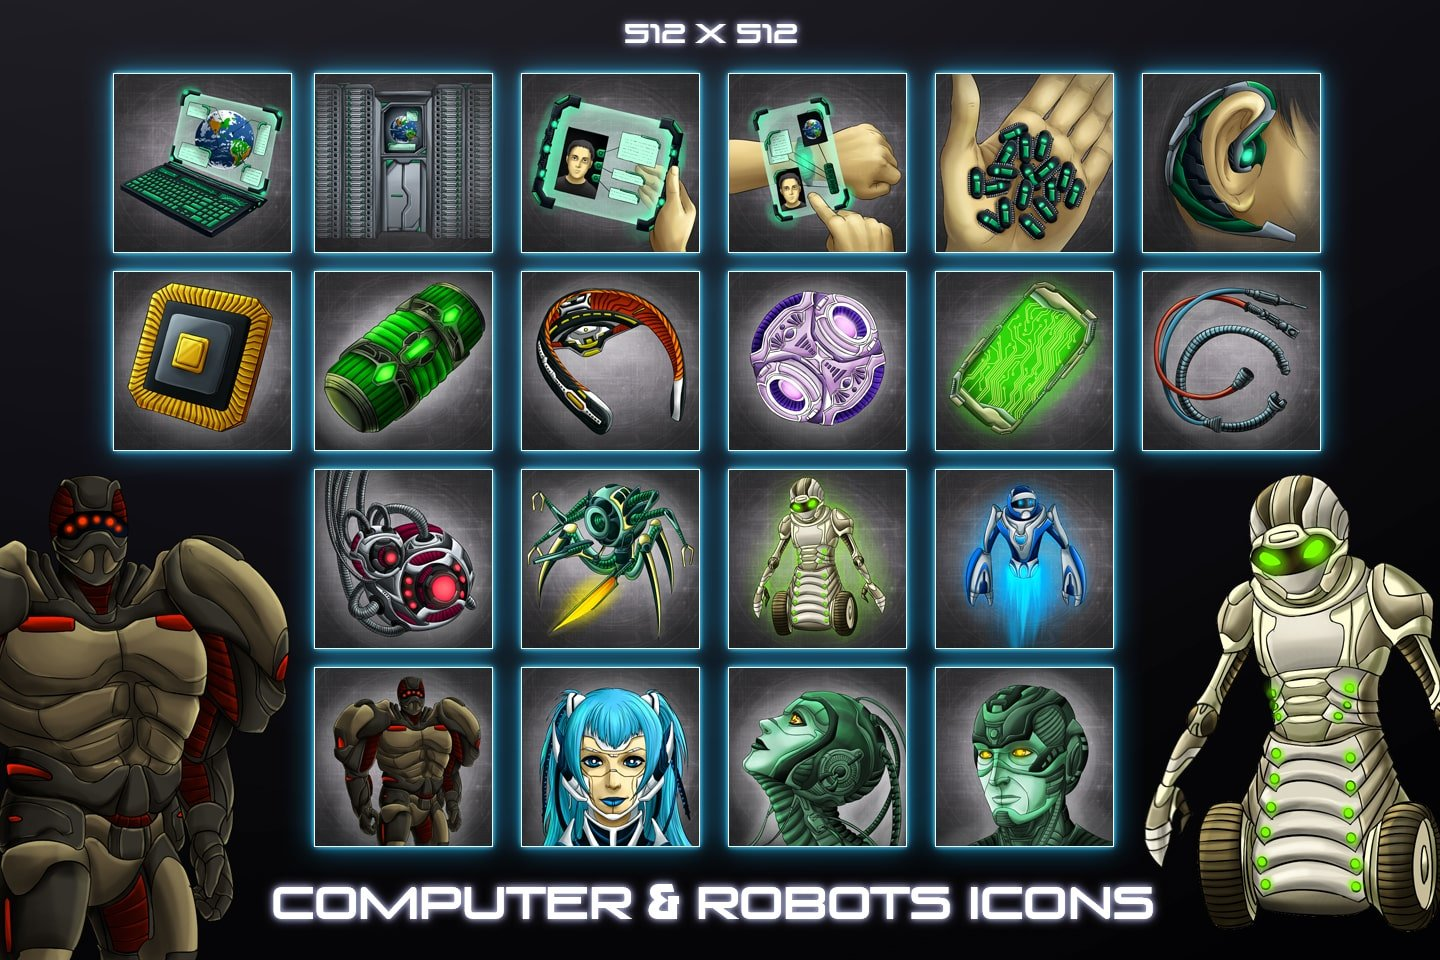 Sci-Fi Robots and Computers Icons